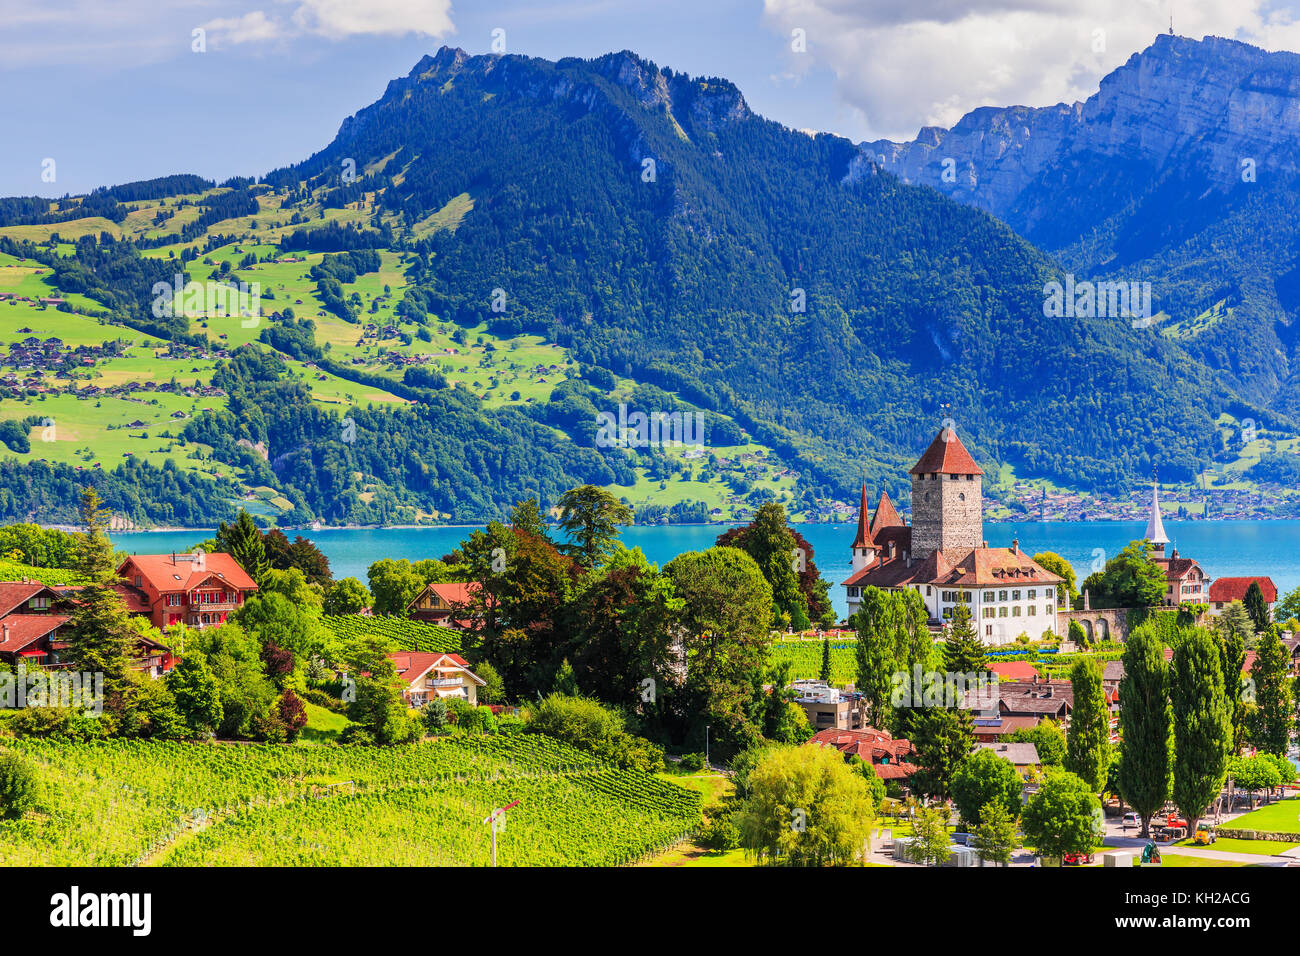 Spiez, Switzerland. The town of Spiez by Thun lake in the Berner Oberland. - Stock Image